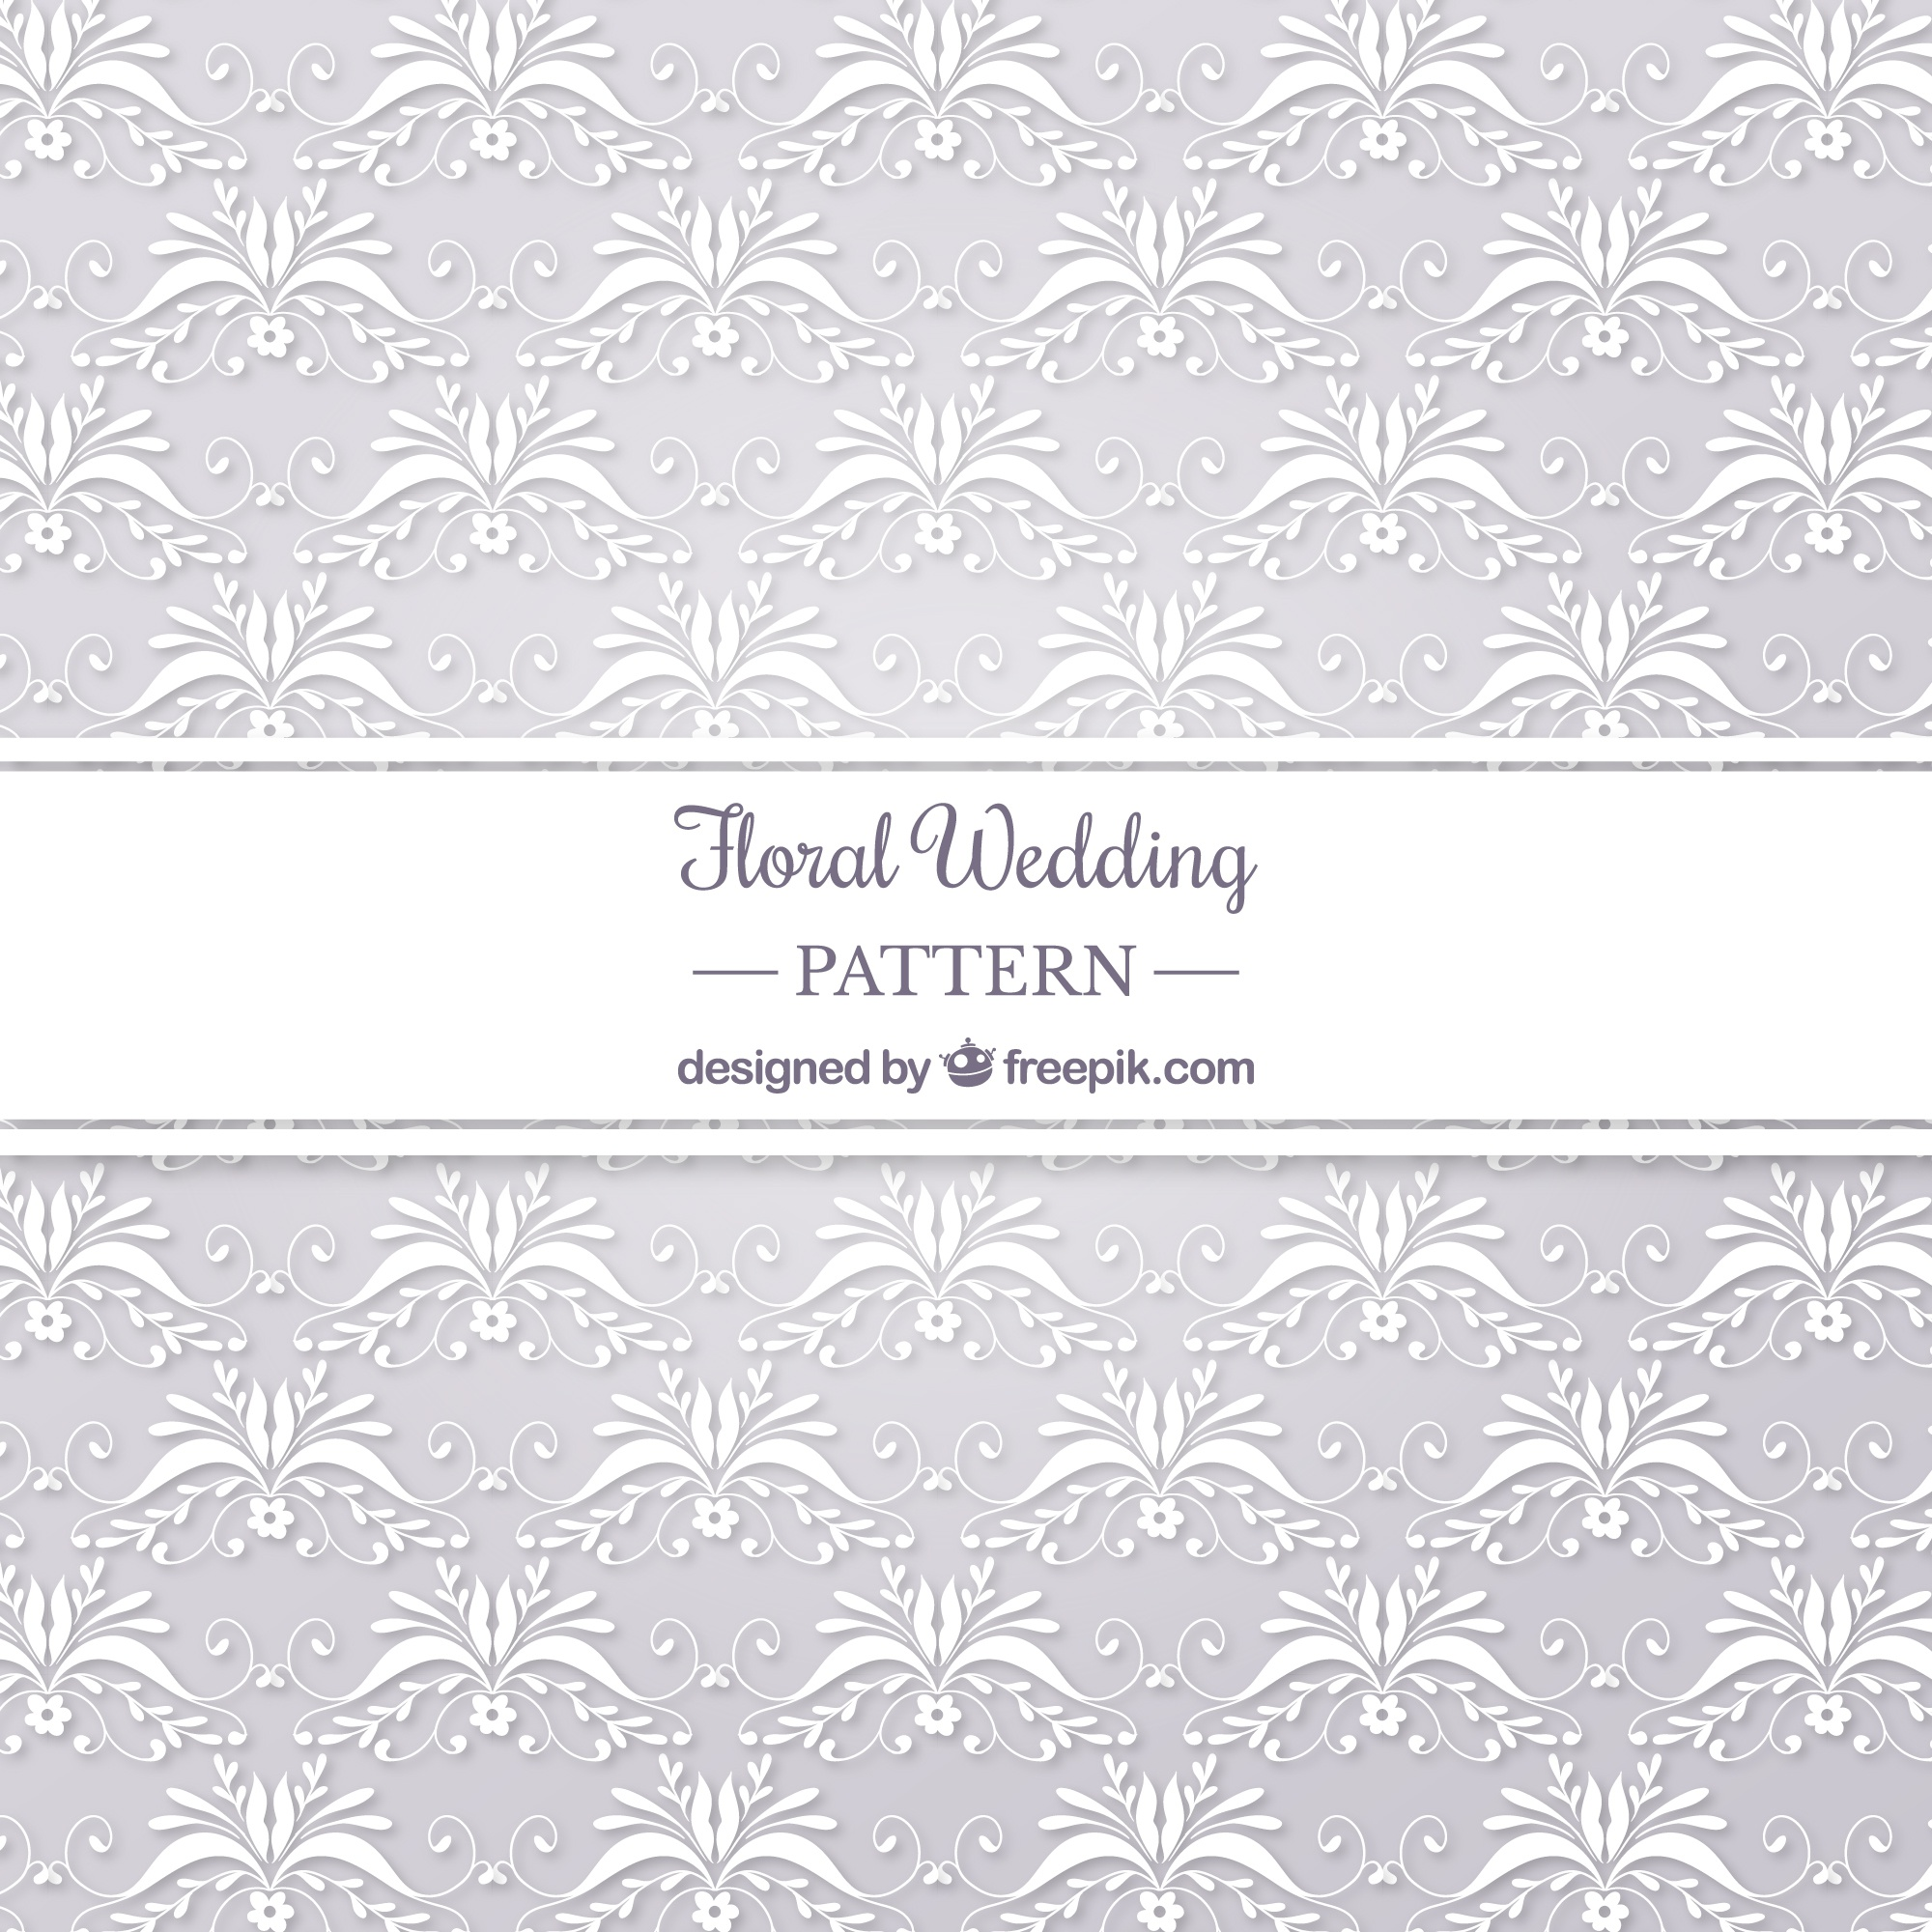 Floral wedding pattern backgorund